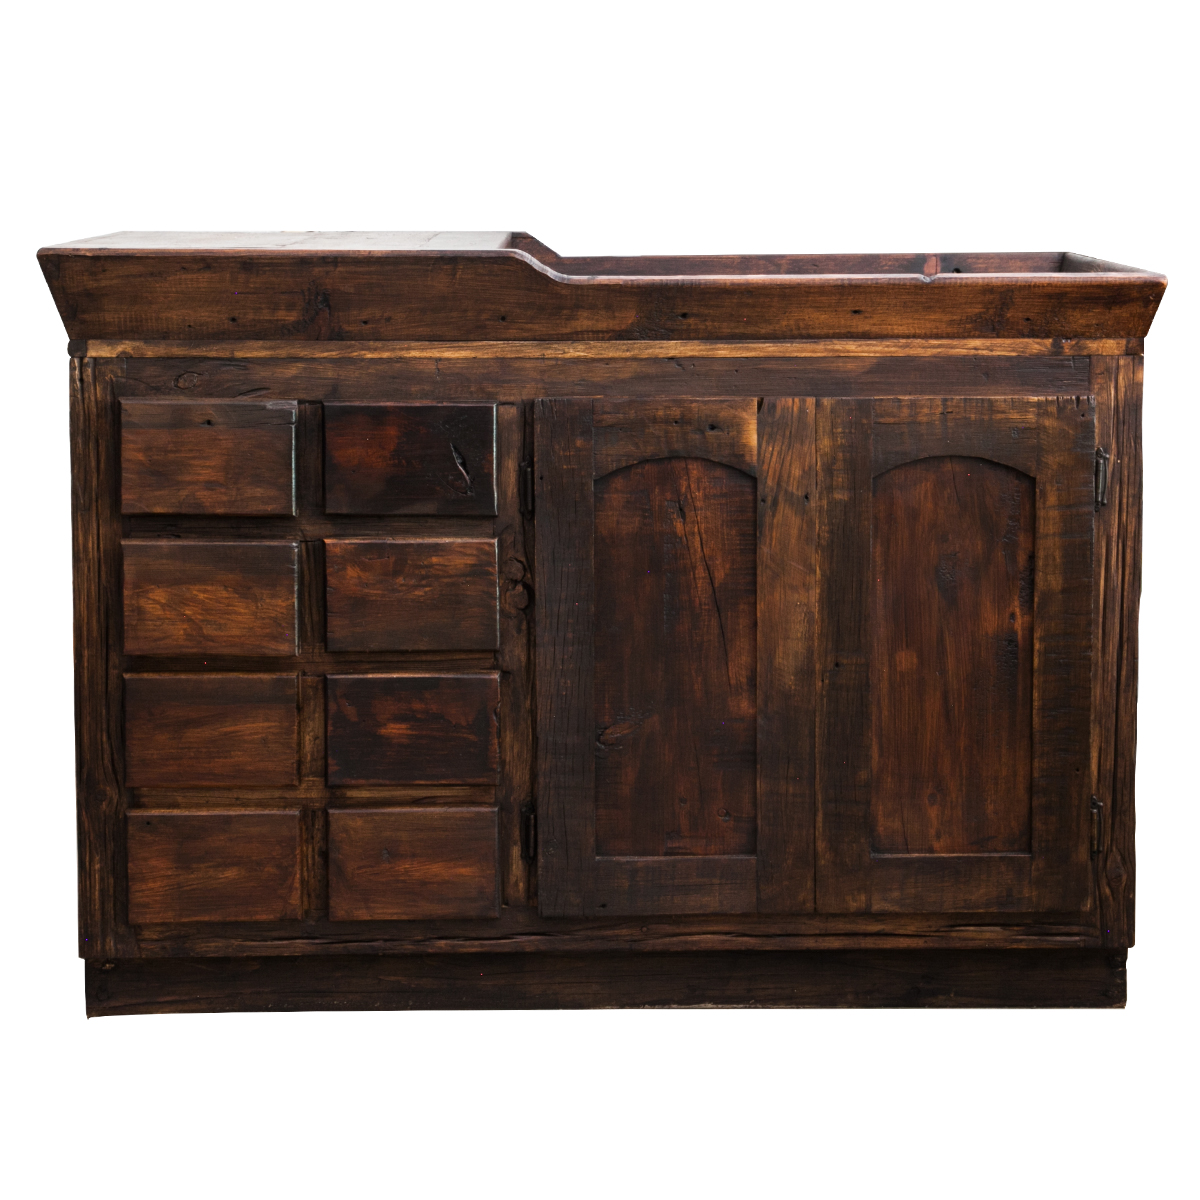 Alden reclaimed bathroom vanity for sale perfect fit for any bathroom Stores to buy bathroom vanities